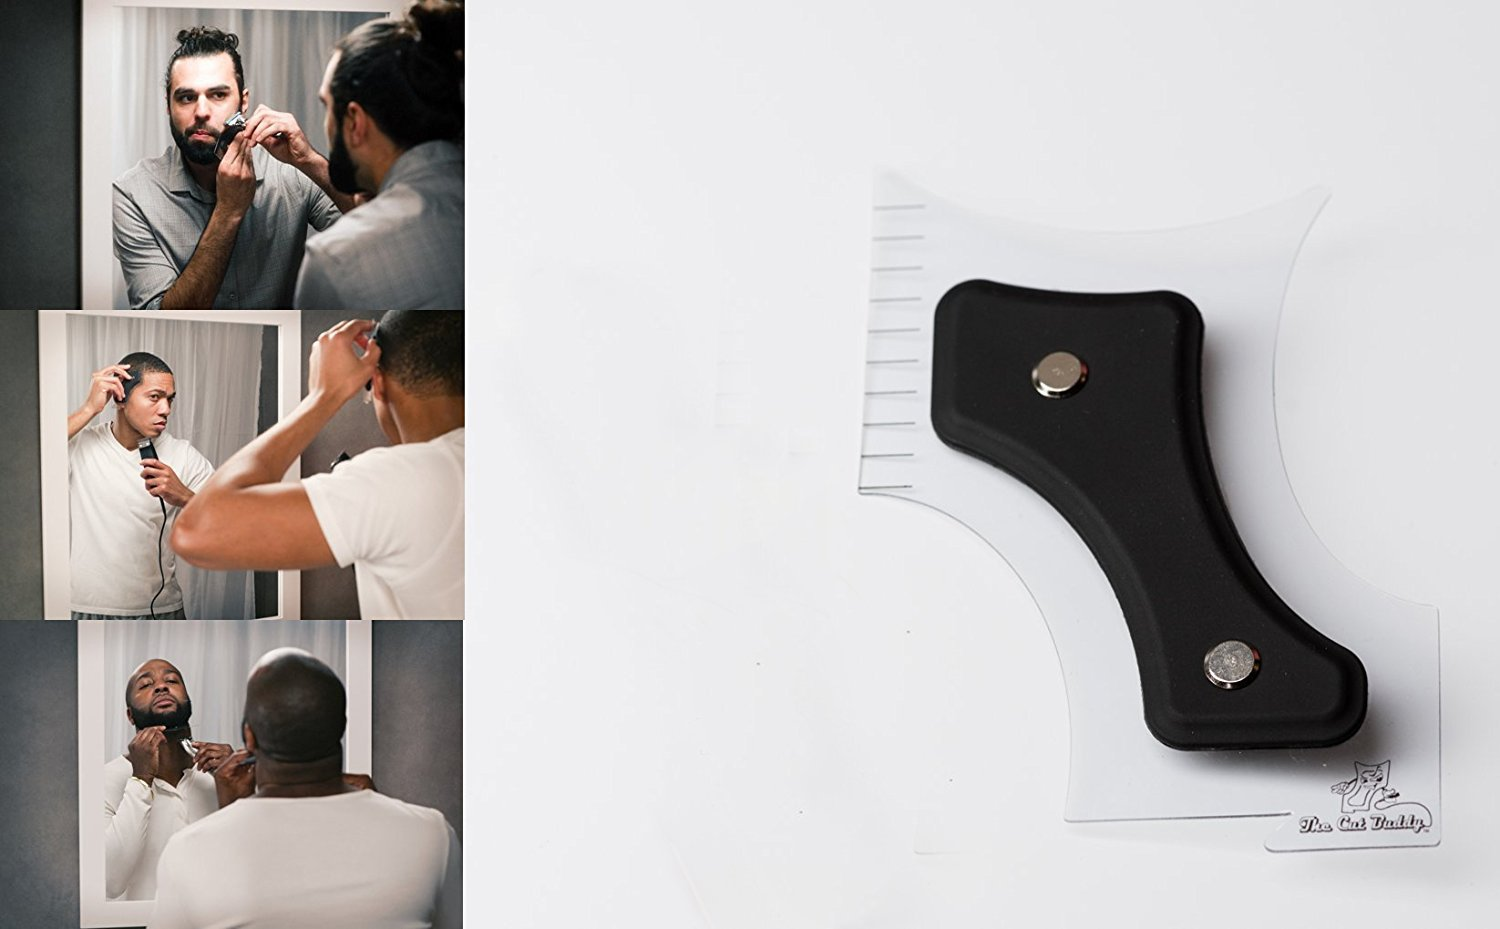 Makngrid The Cut Buddy - Shark Tank Winner - Hair Beard Shaping